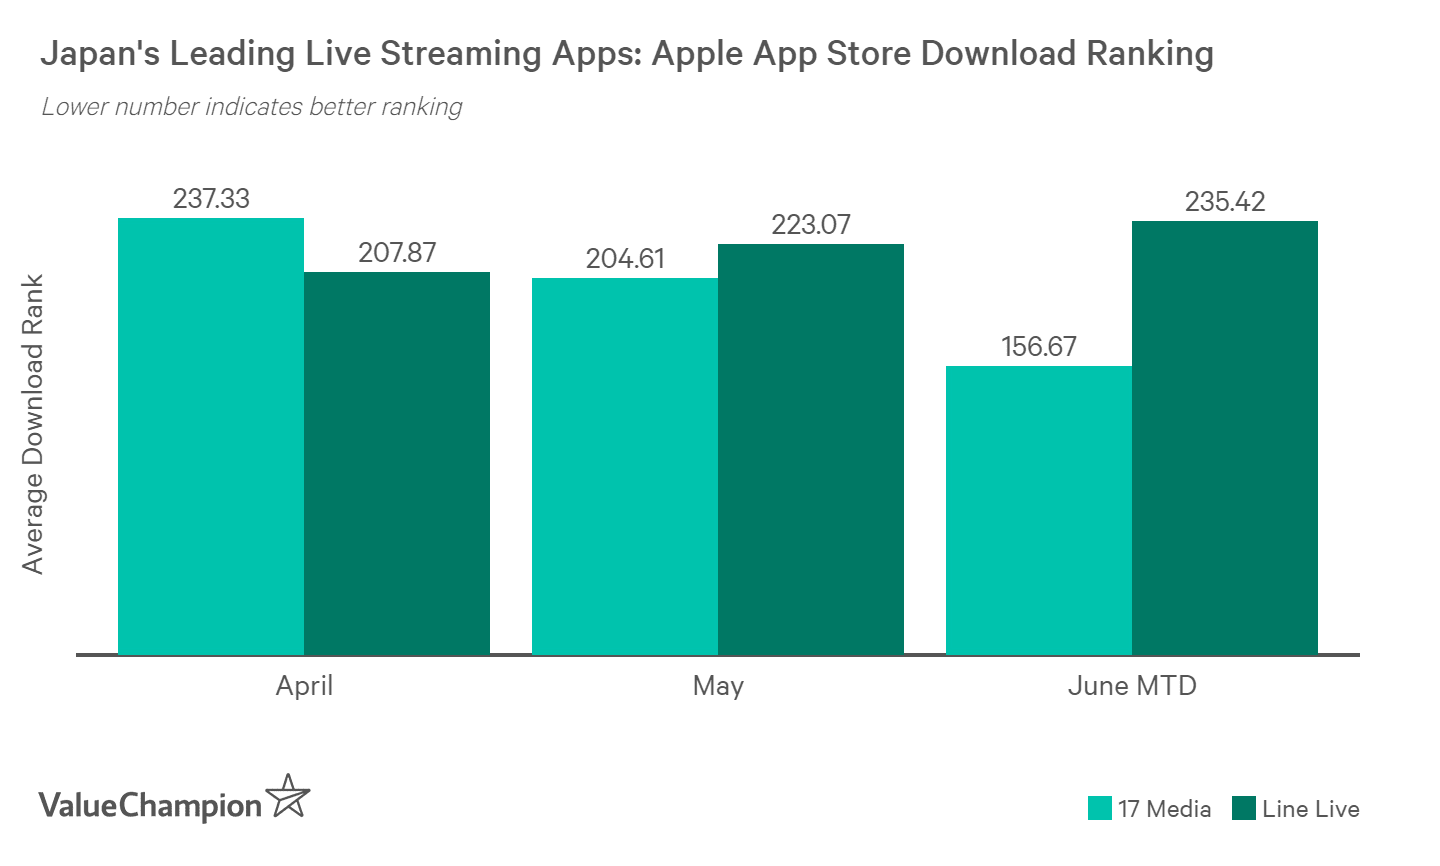 M17 and Line Live are competing for the top spot for live streaming apps in Japan